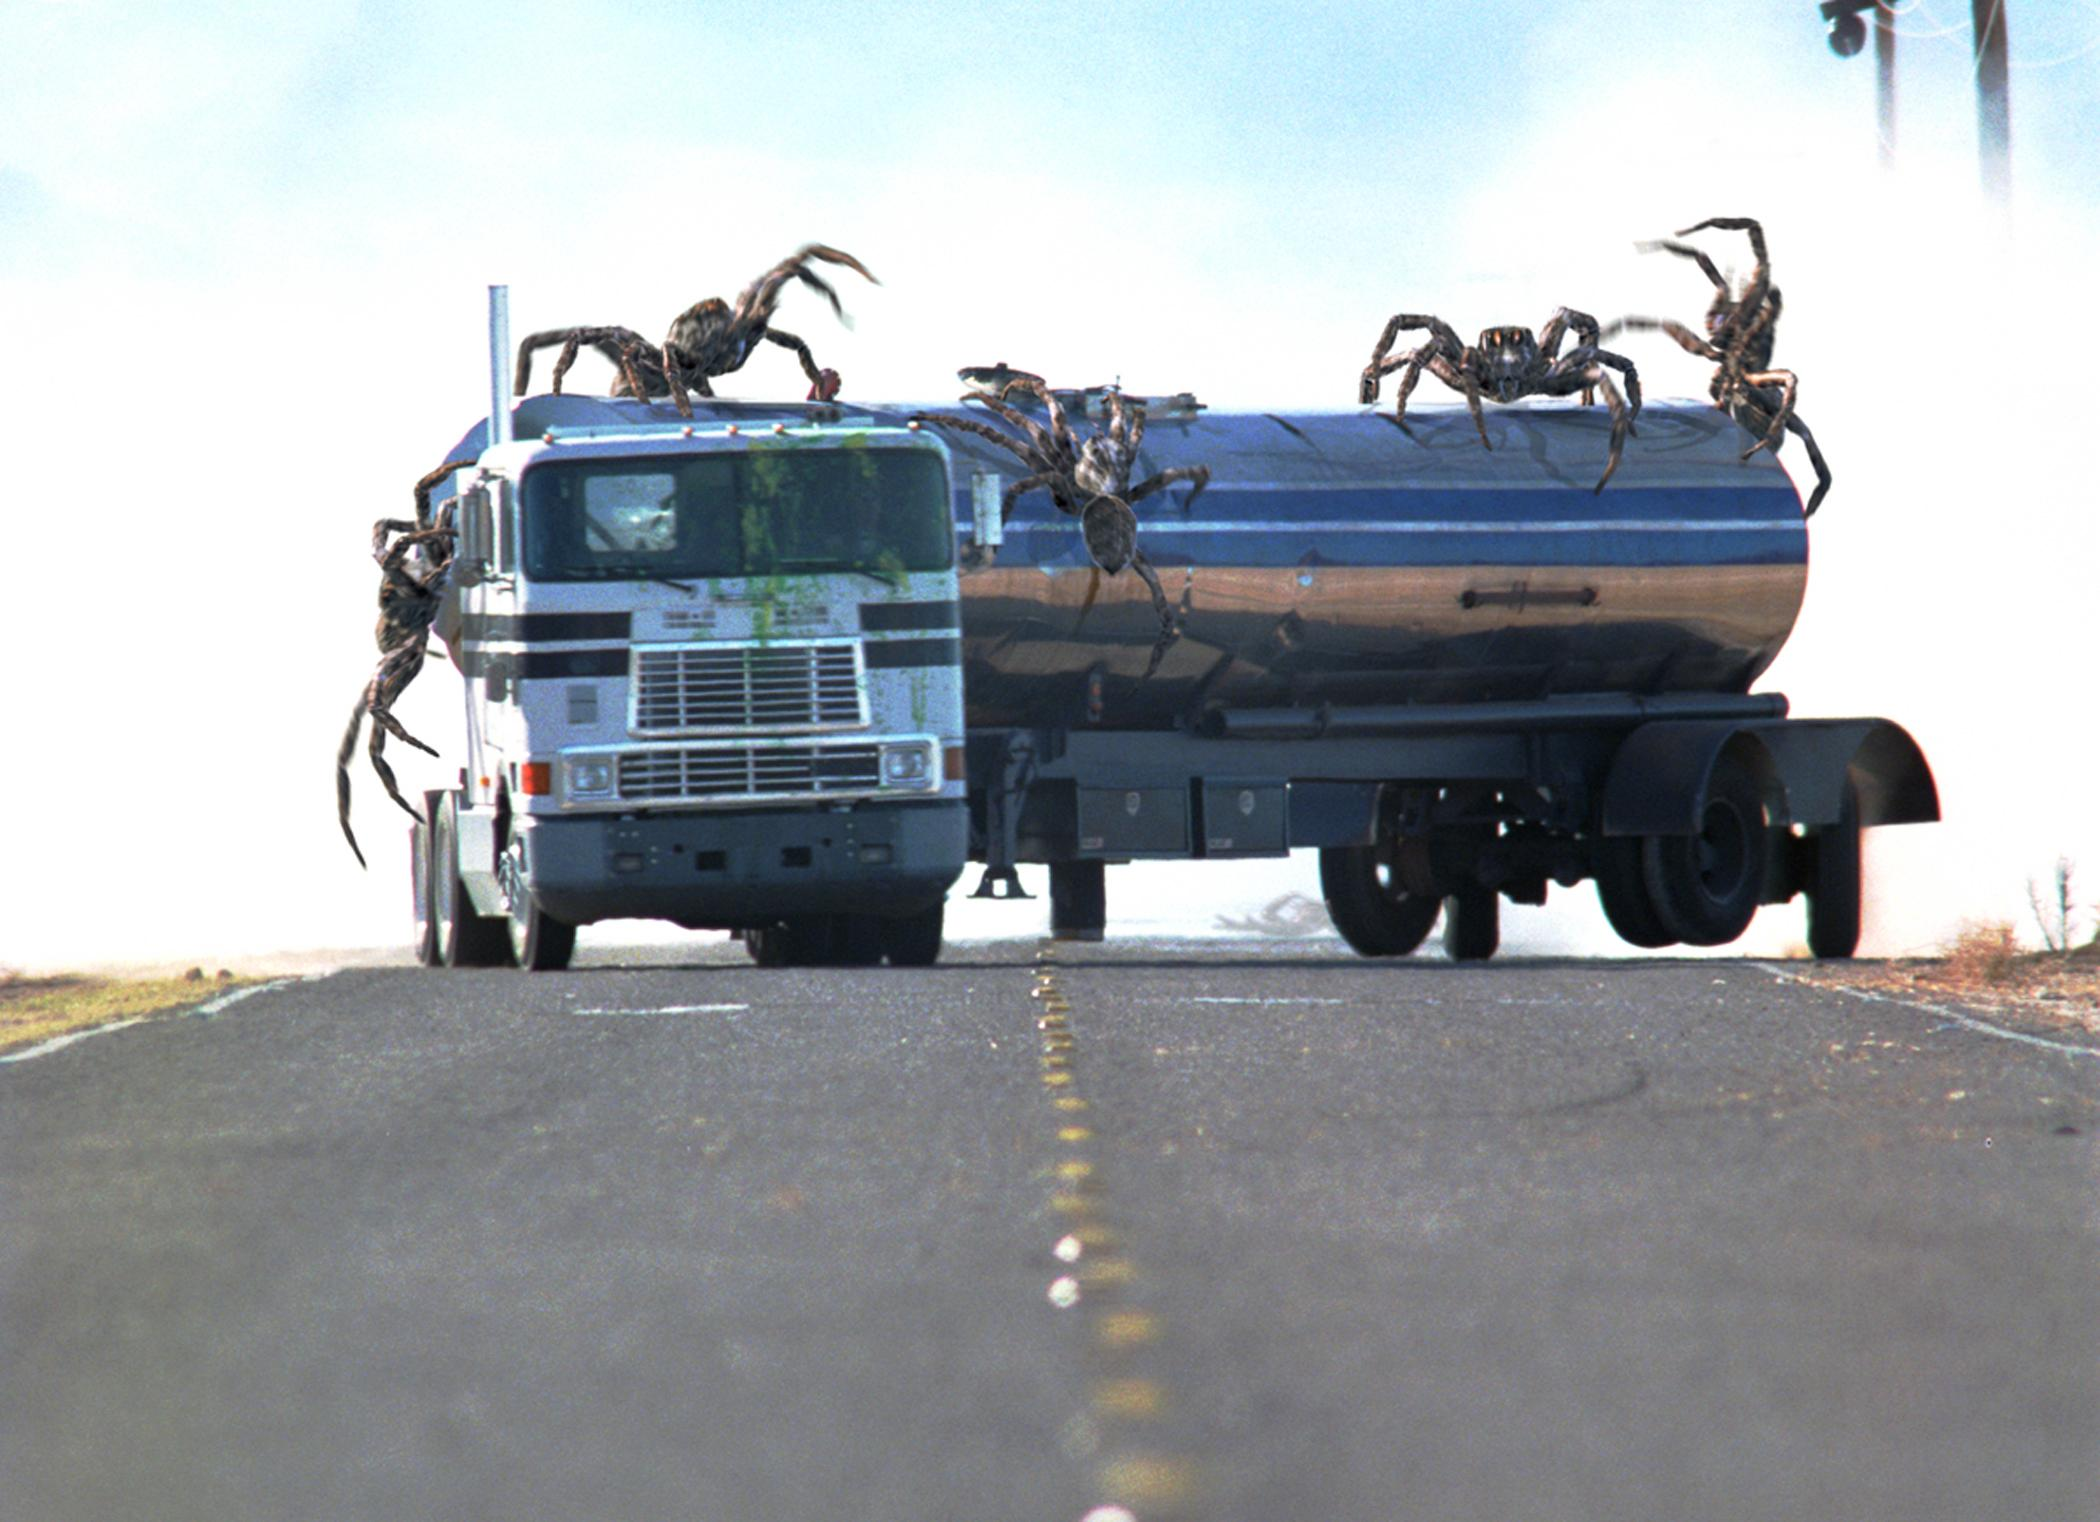 Giant spiders vs tanker in Eight Legged Freaks (2002)